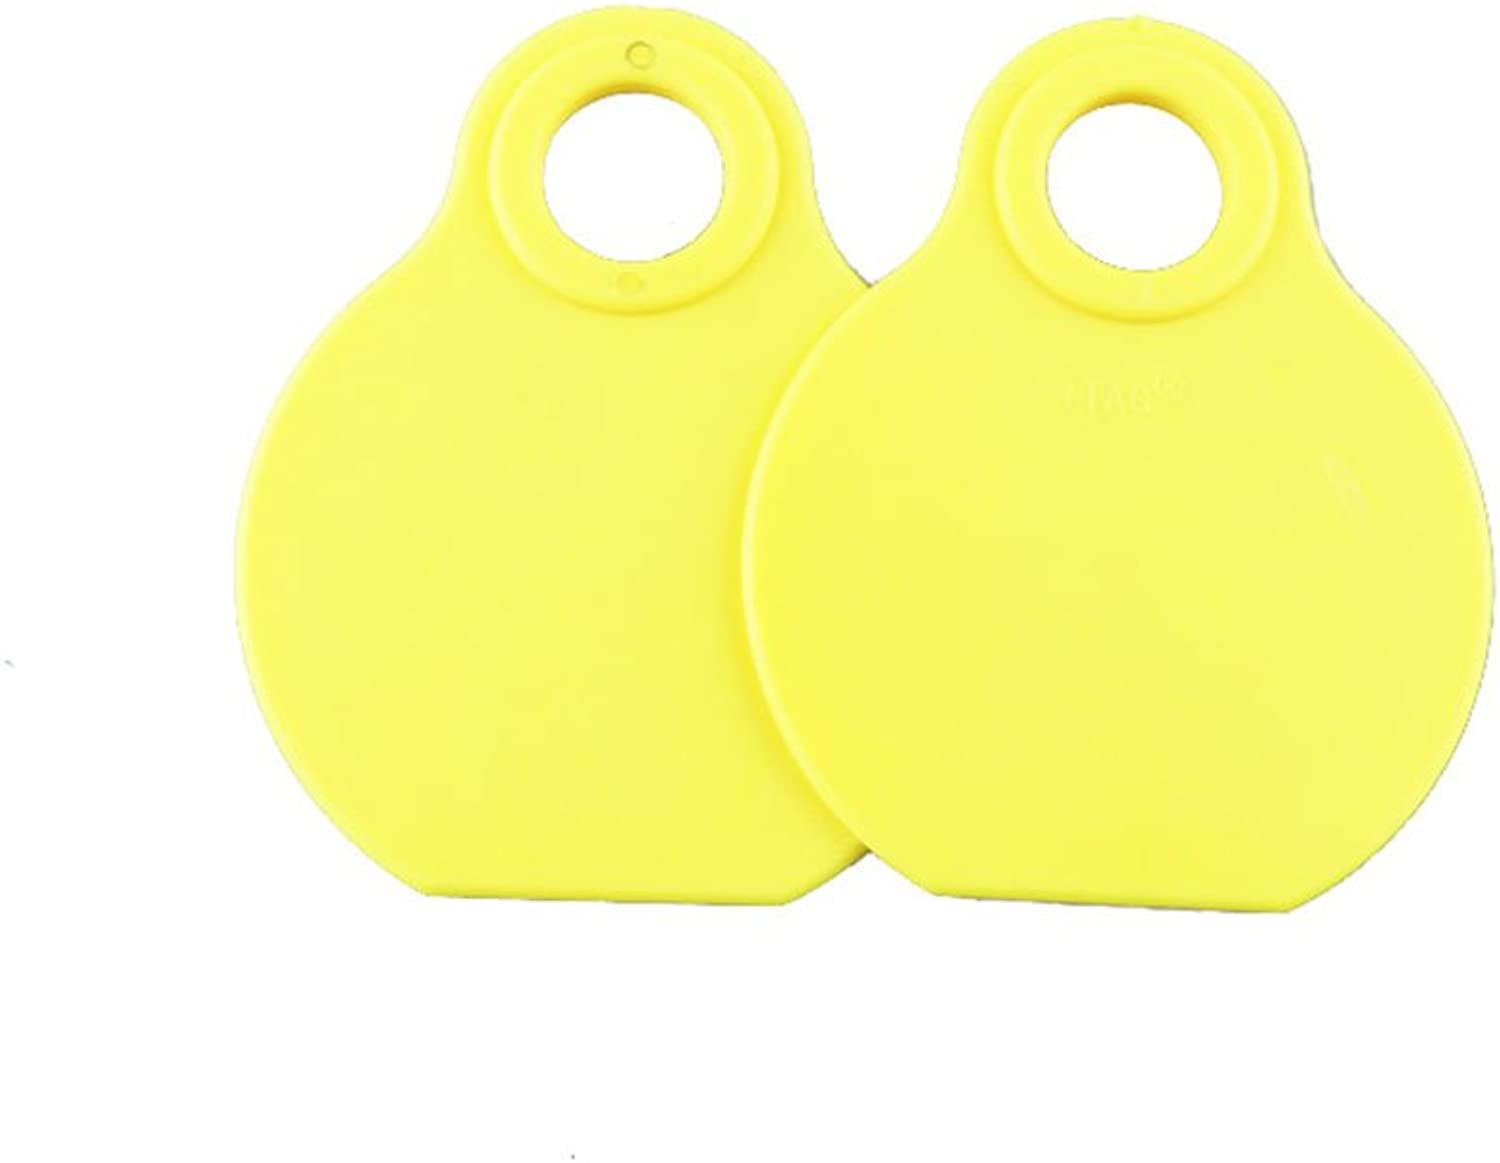 100pcs Blank TPU Painless Hanging Ear Tag One Piece Ear Mark No Need Applicator (Yellow ear tag)